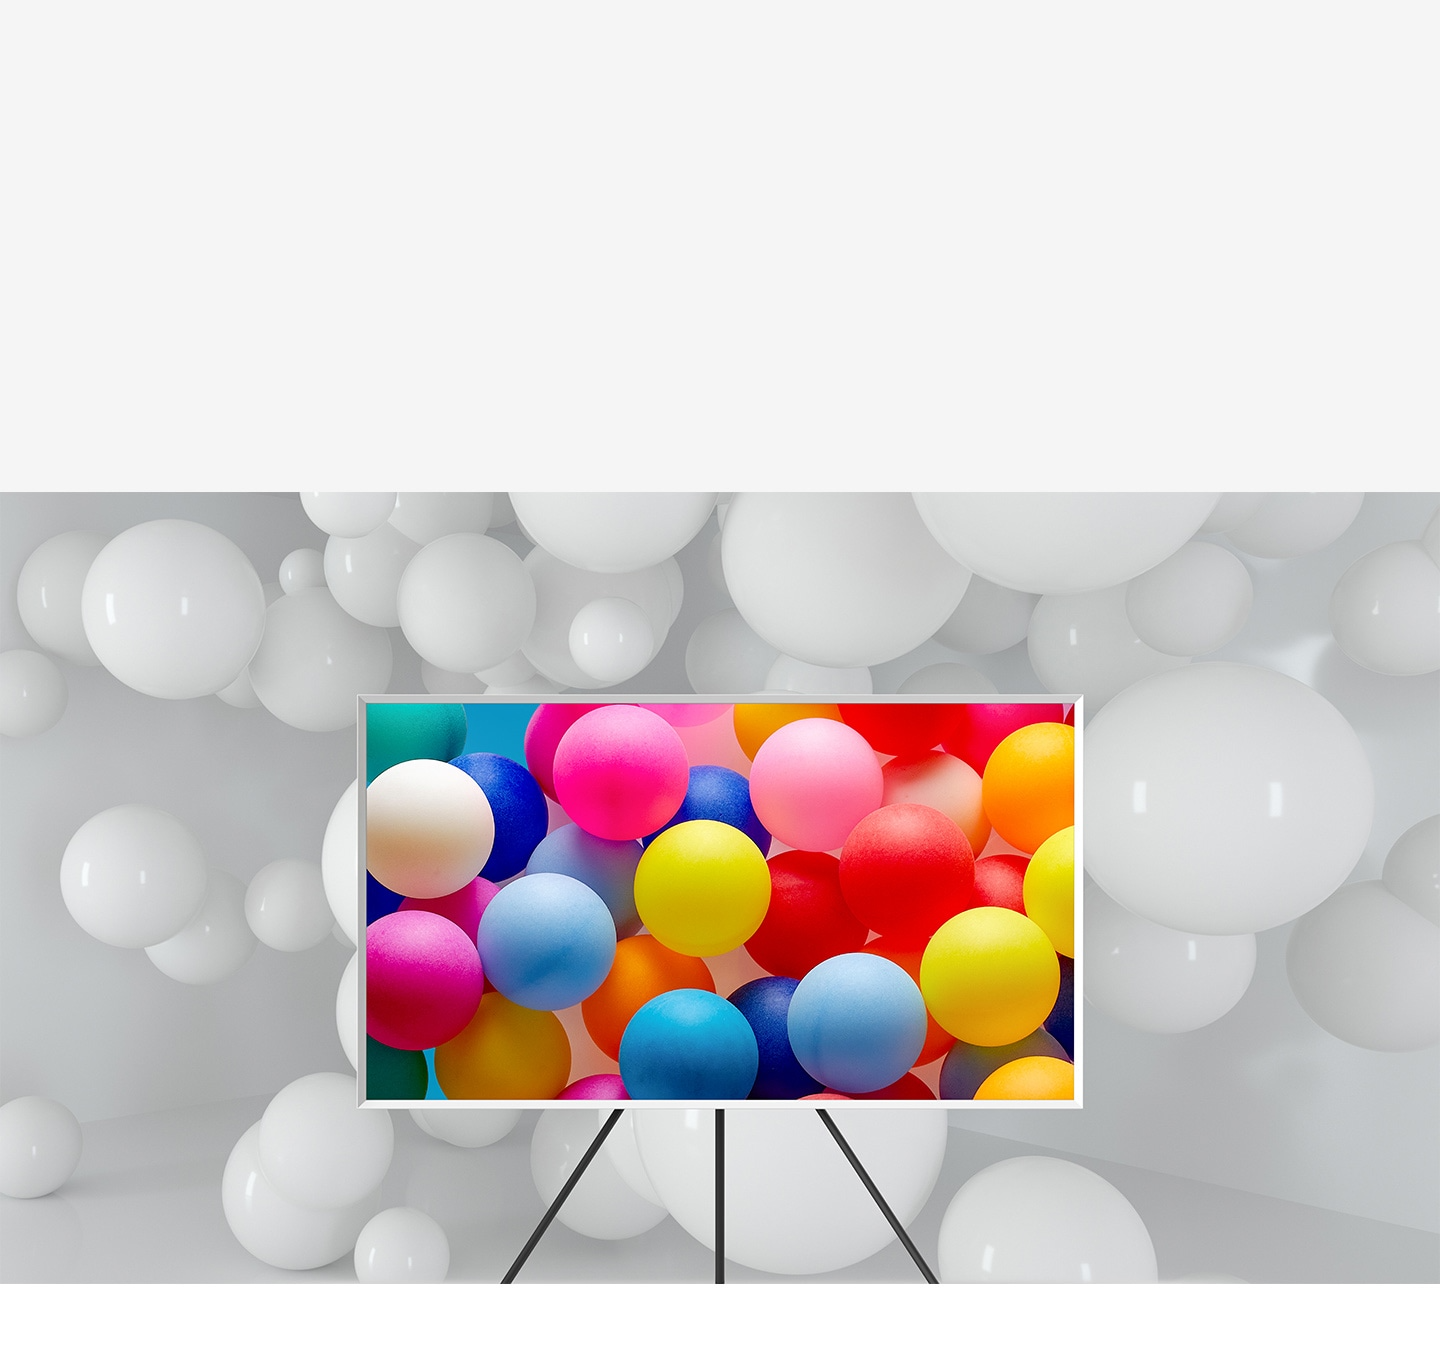 The Frame which is on Studio Stand is in a room full of white balloons. Only the balloons on the screen are visible in various vivid colours.